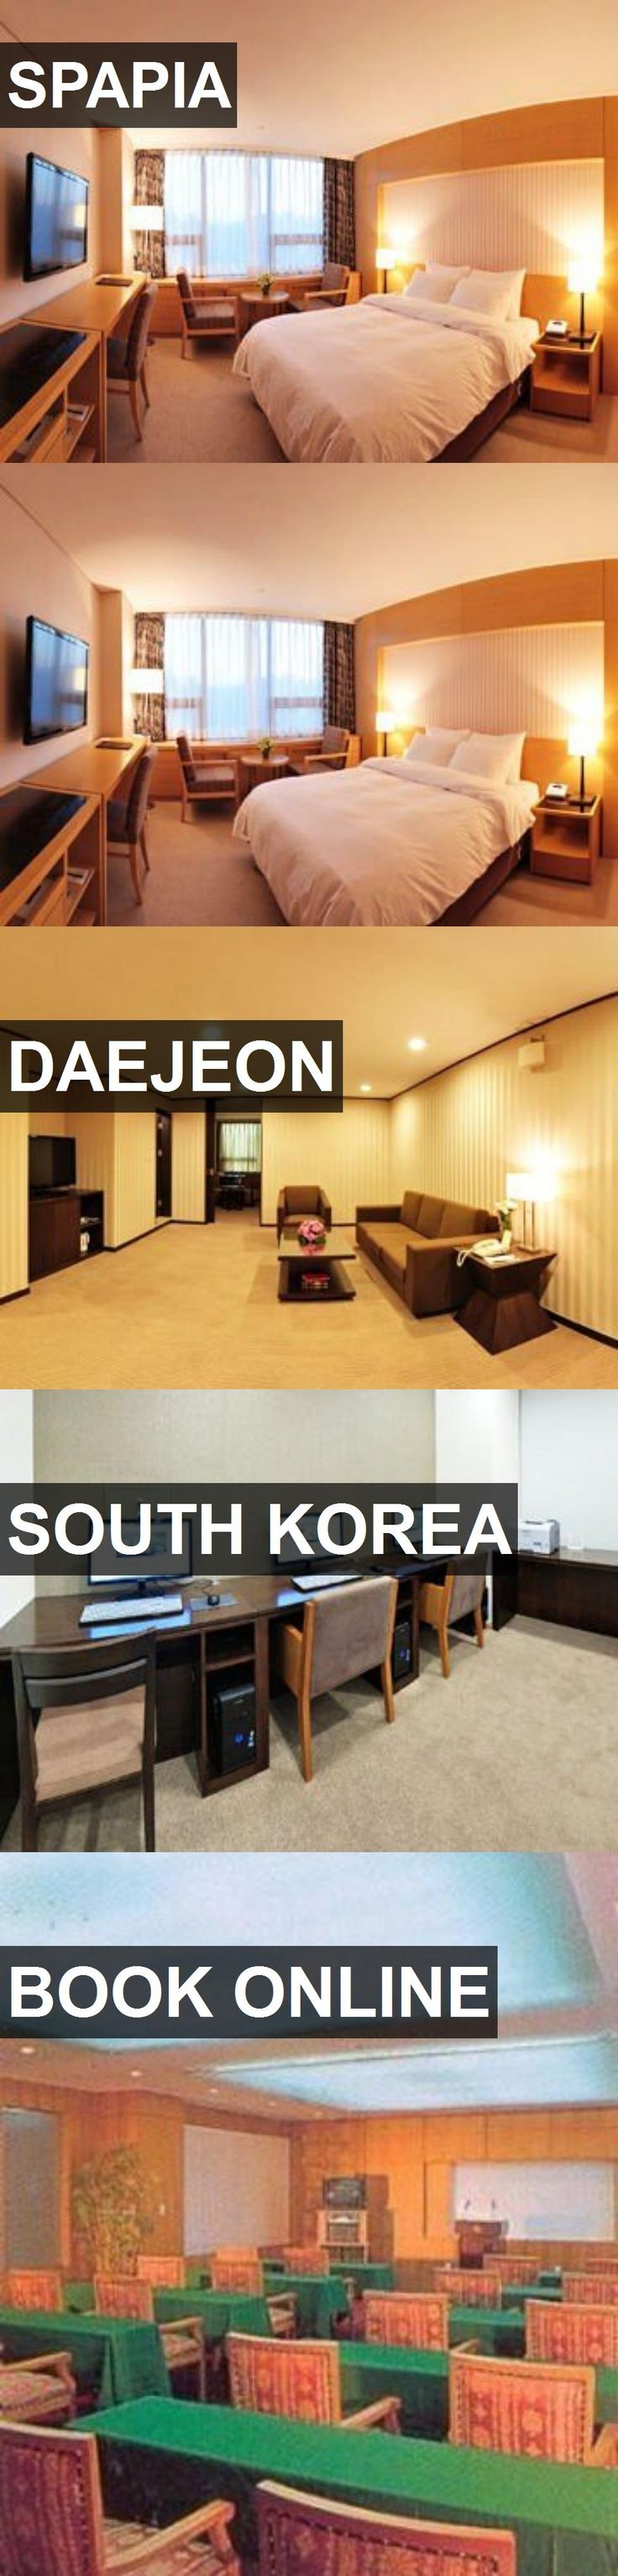 Hotel SPAPIA in Daejeon, South Korea. For more information, photos, reviews and best prices please follow the link. #SouthKorea #Daejeon #travel #vacation #hotel